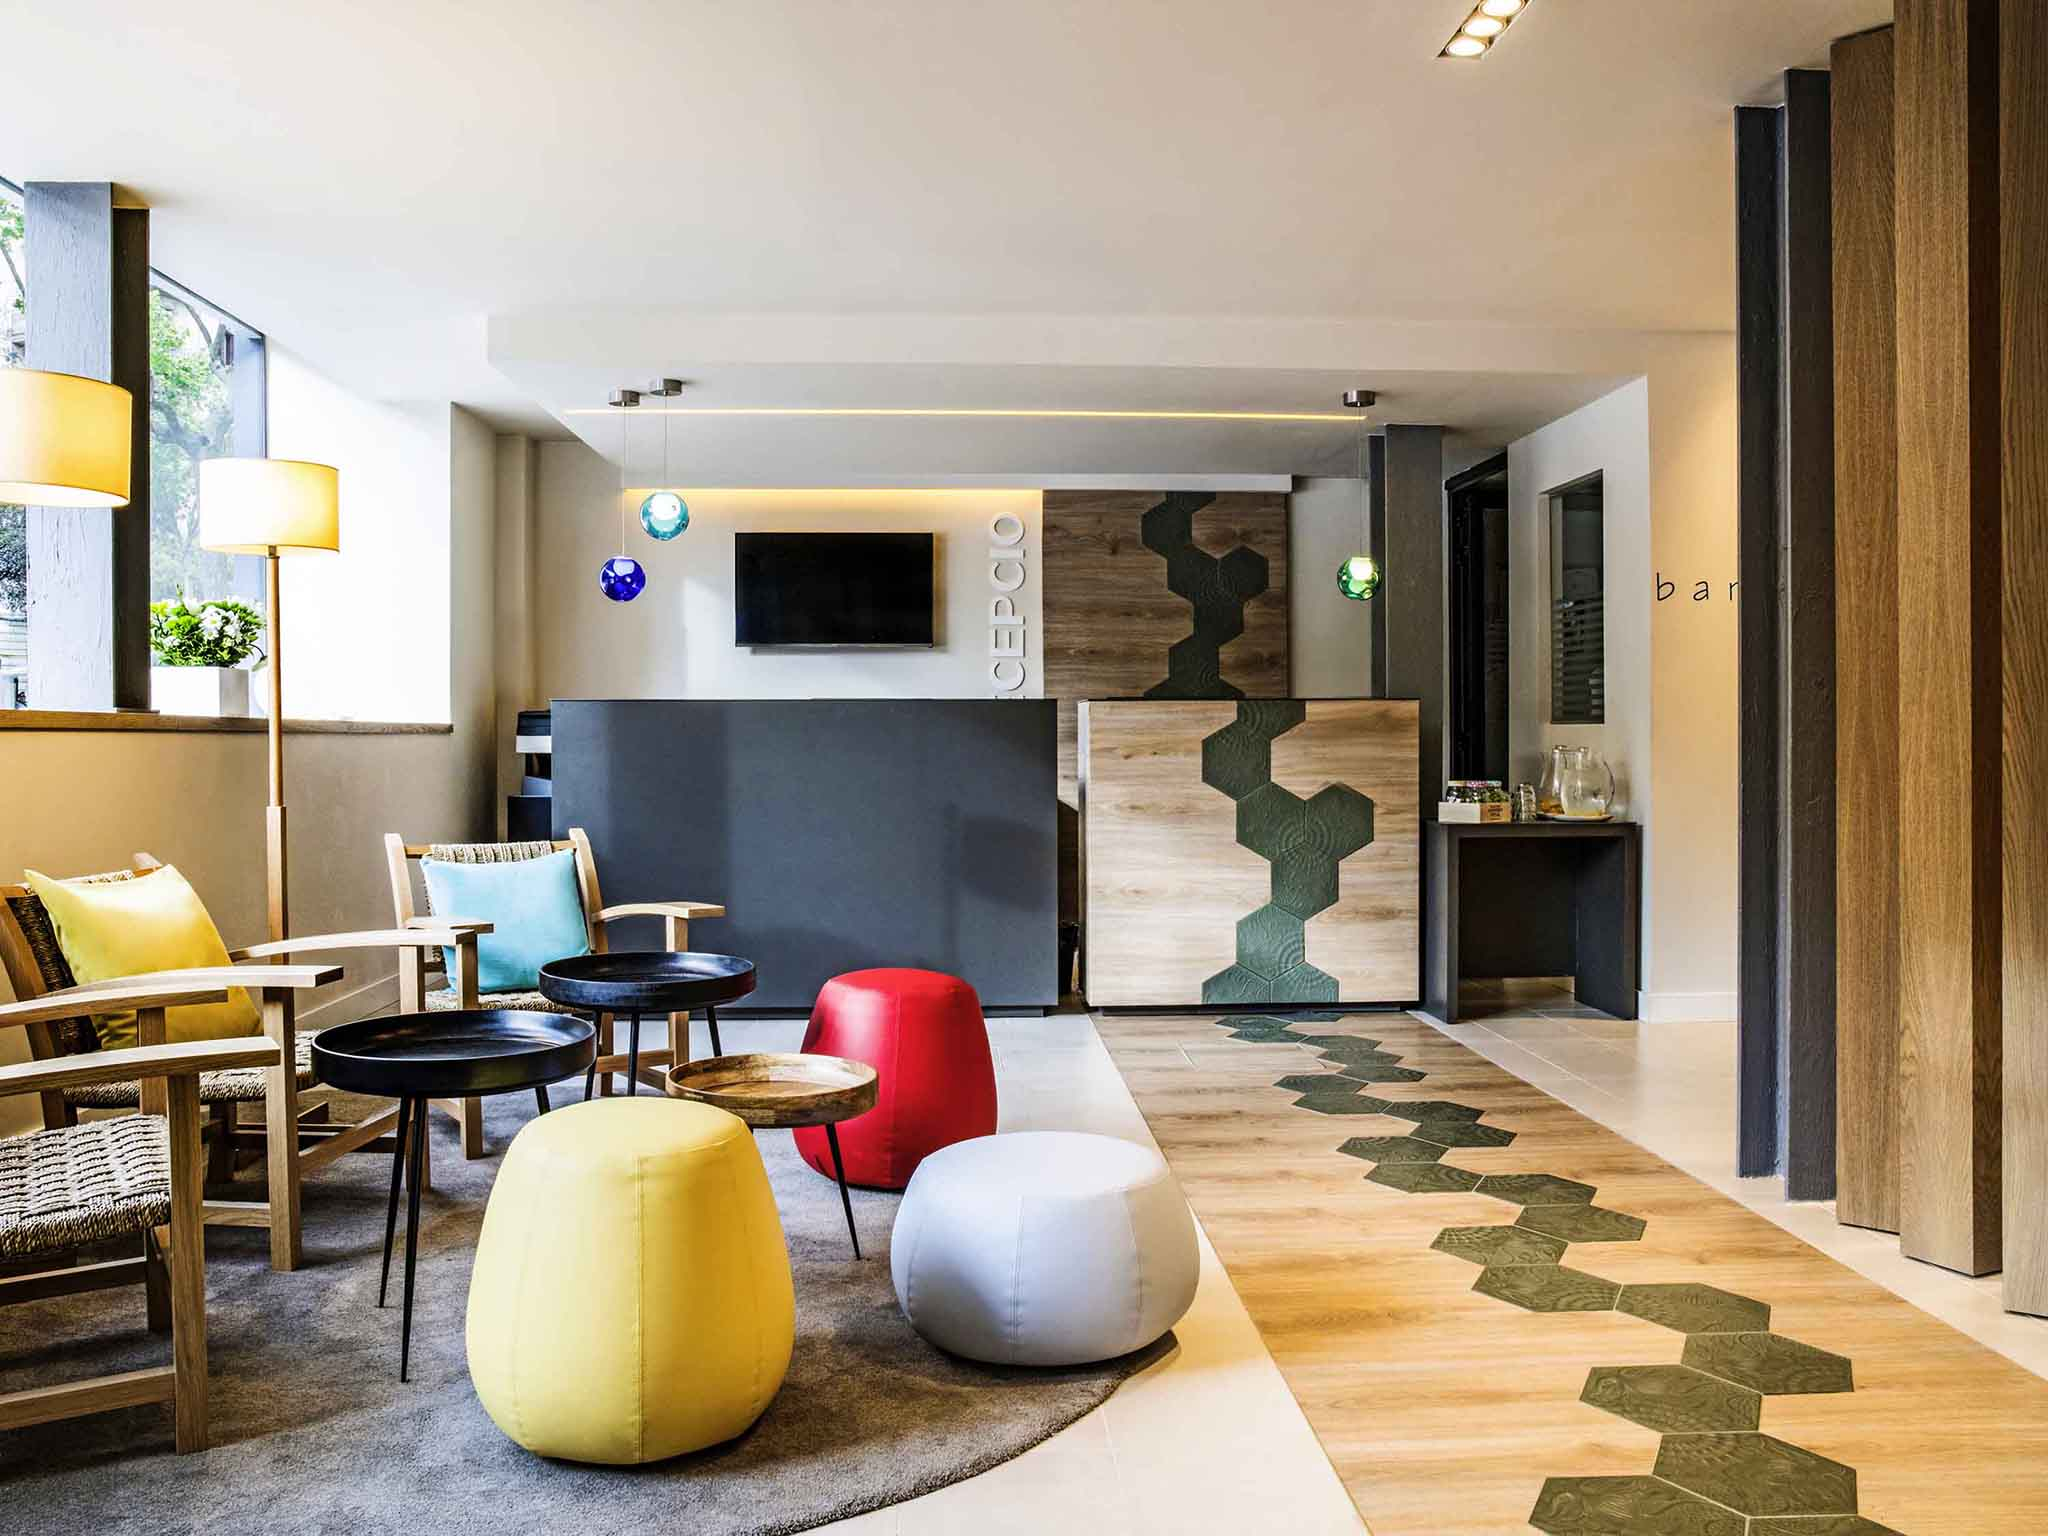 Hotell – ibis Styles Barcelona Centre